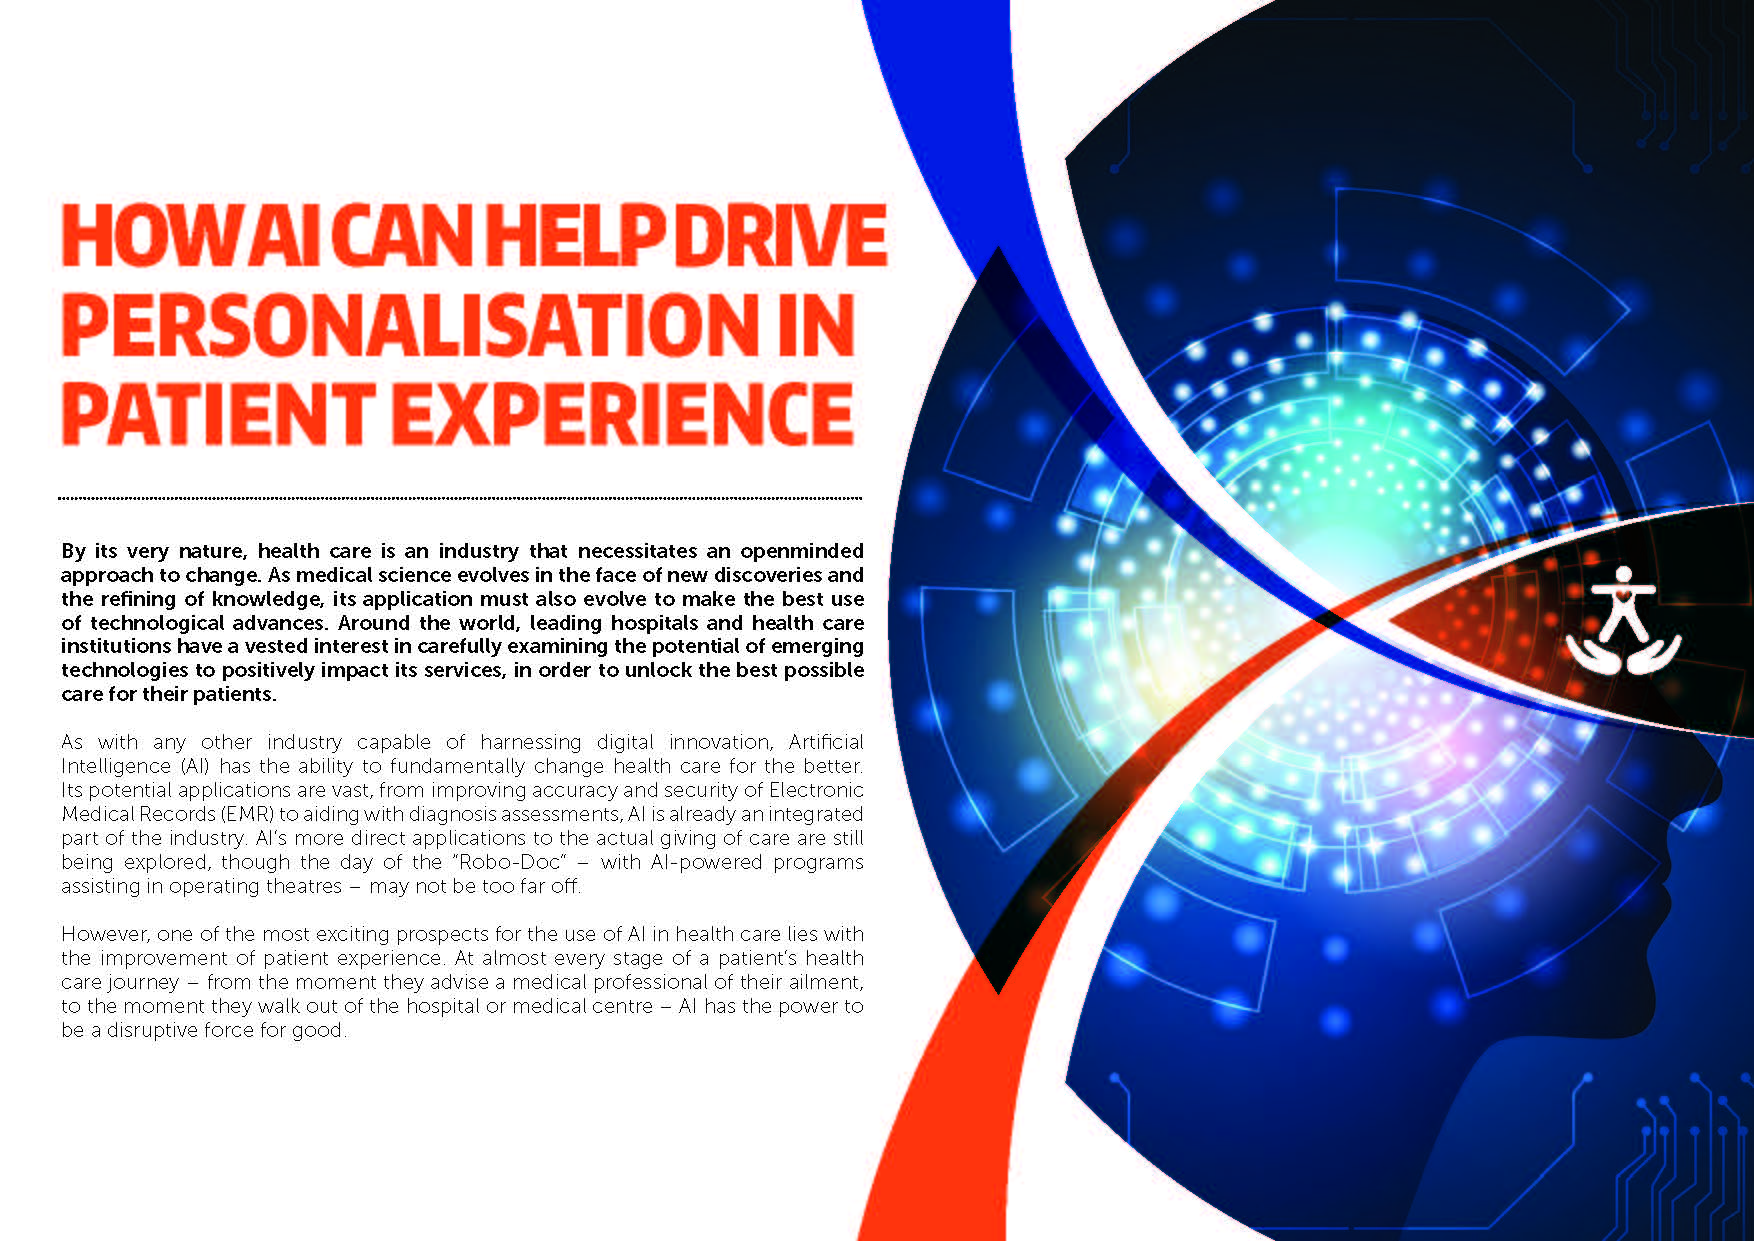 Download the article - How AI Can Help Drive Personalisation in Patient Experience